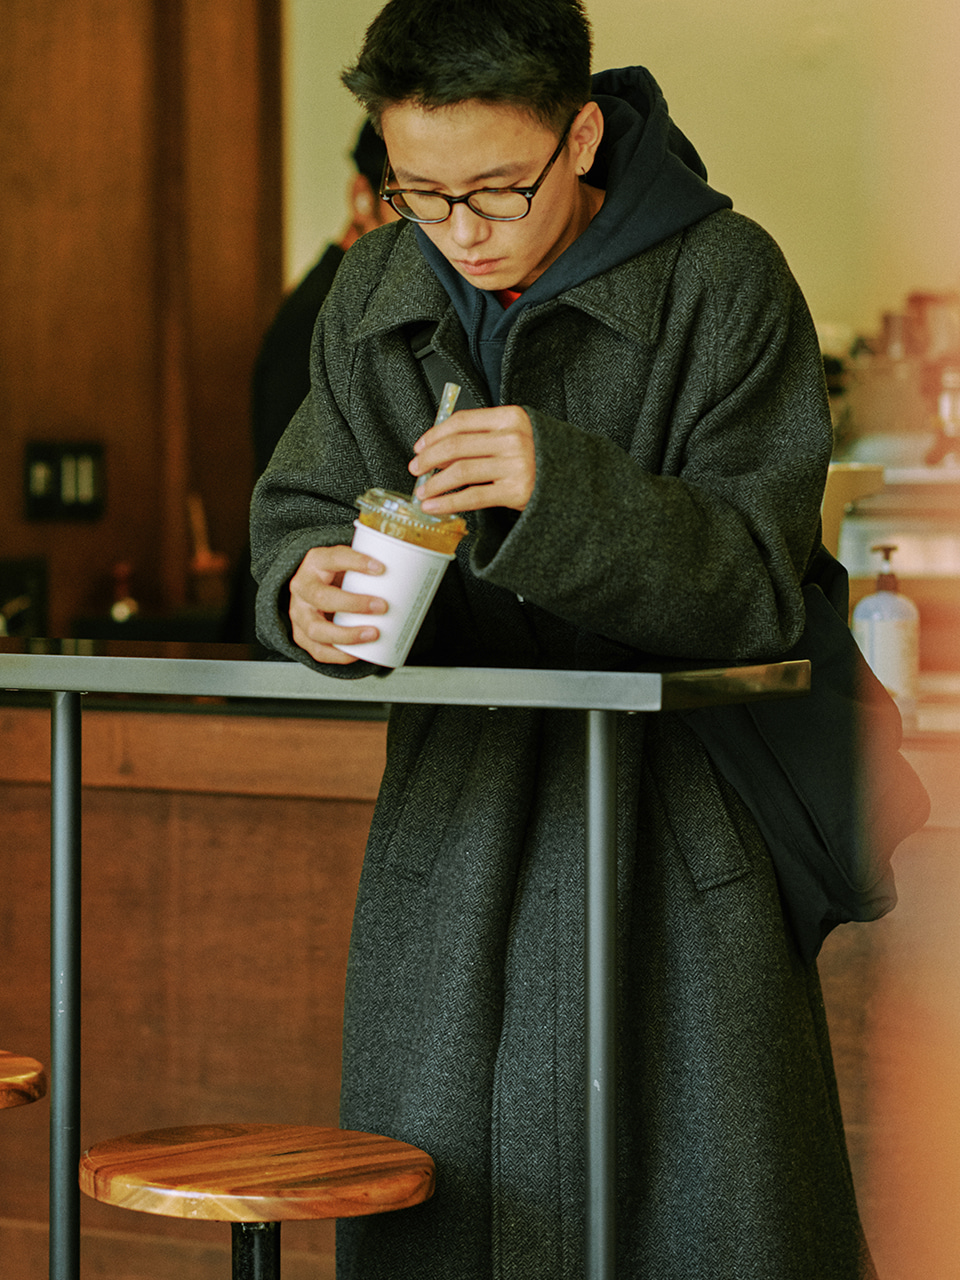 [10/30(금) 예약배송][FW20] Wool Essential Balmacaan Coat(Charcoal) 스테레오 바이널즈[10/30(금) 예약배송][FW20] Wool Essential Balmacaan Coat(Charcoal)